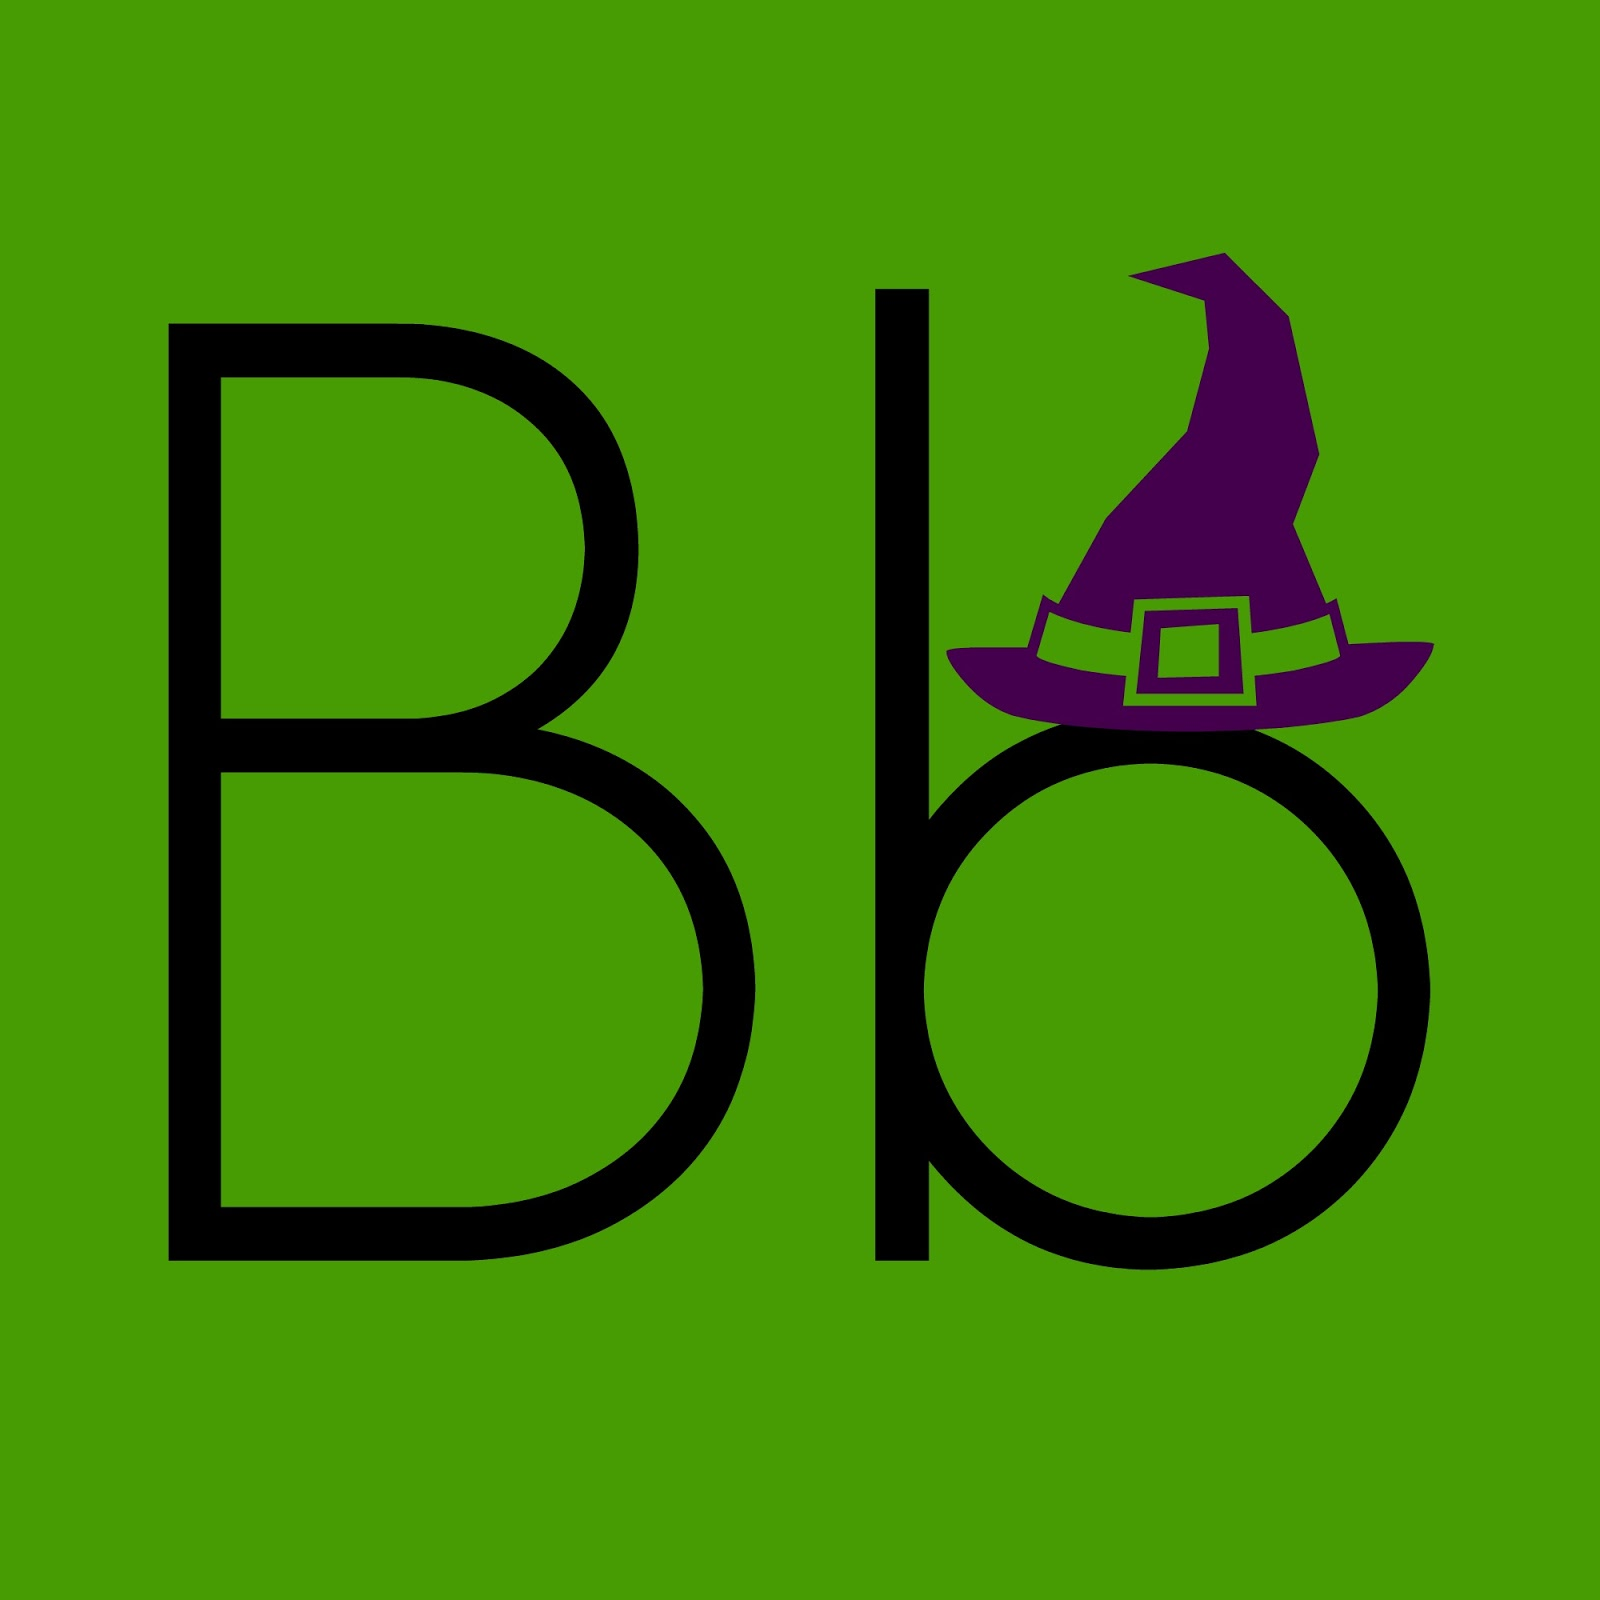 For The Love Of Spanish B De Bruja The Letter Bb In Spanish